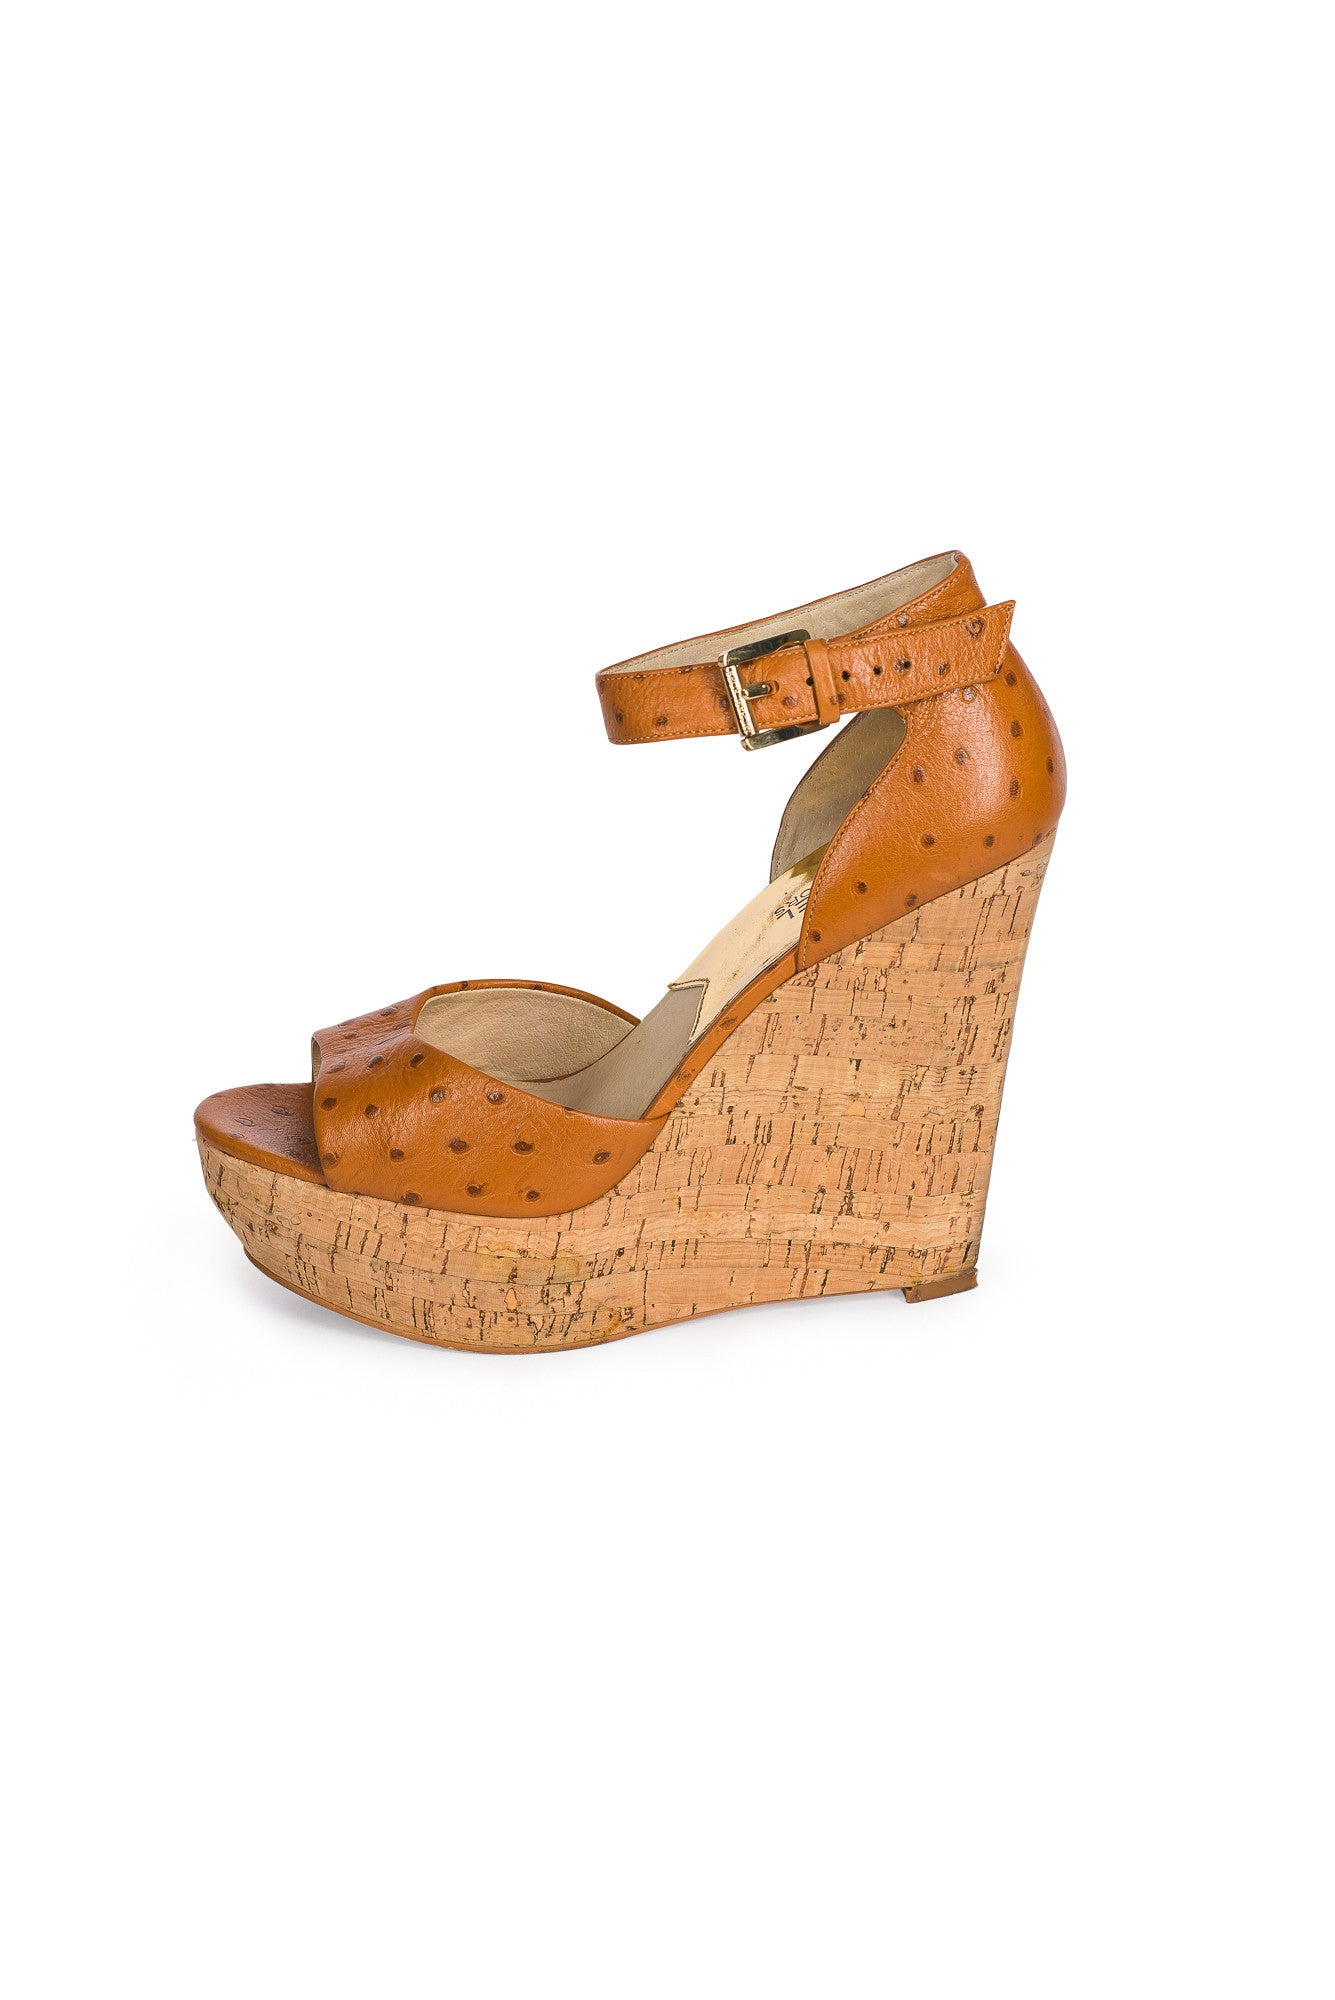 MICHAEL KORS Ostrich Print Leather Wedge Sandal